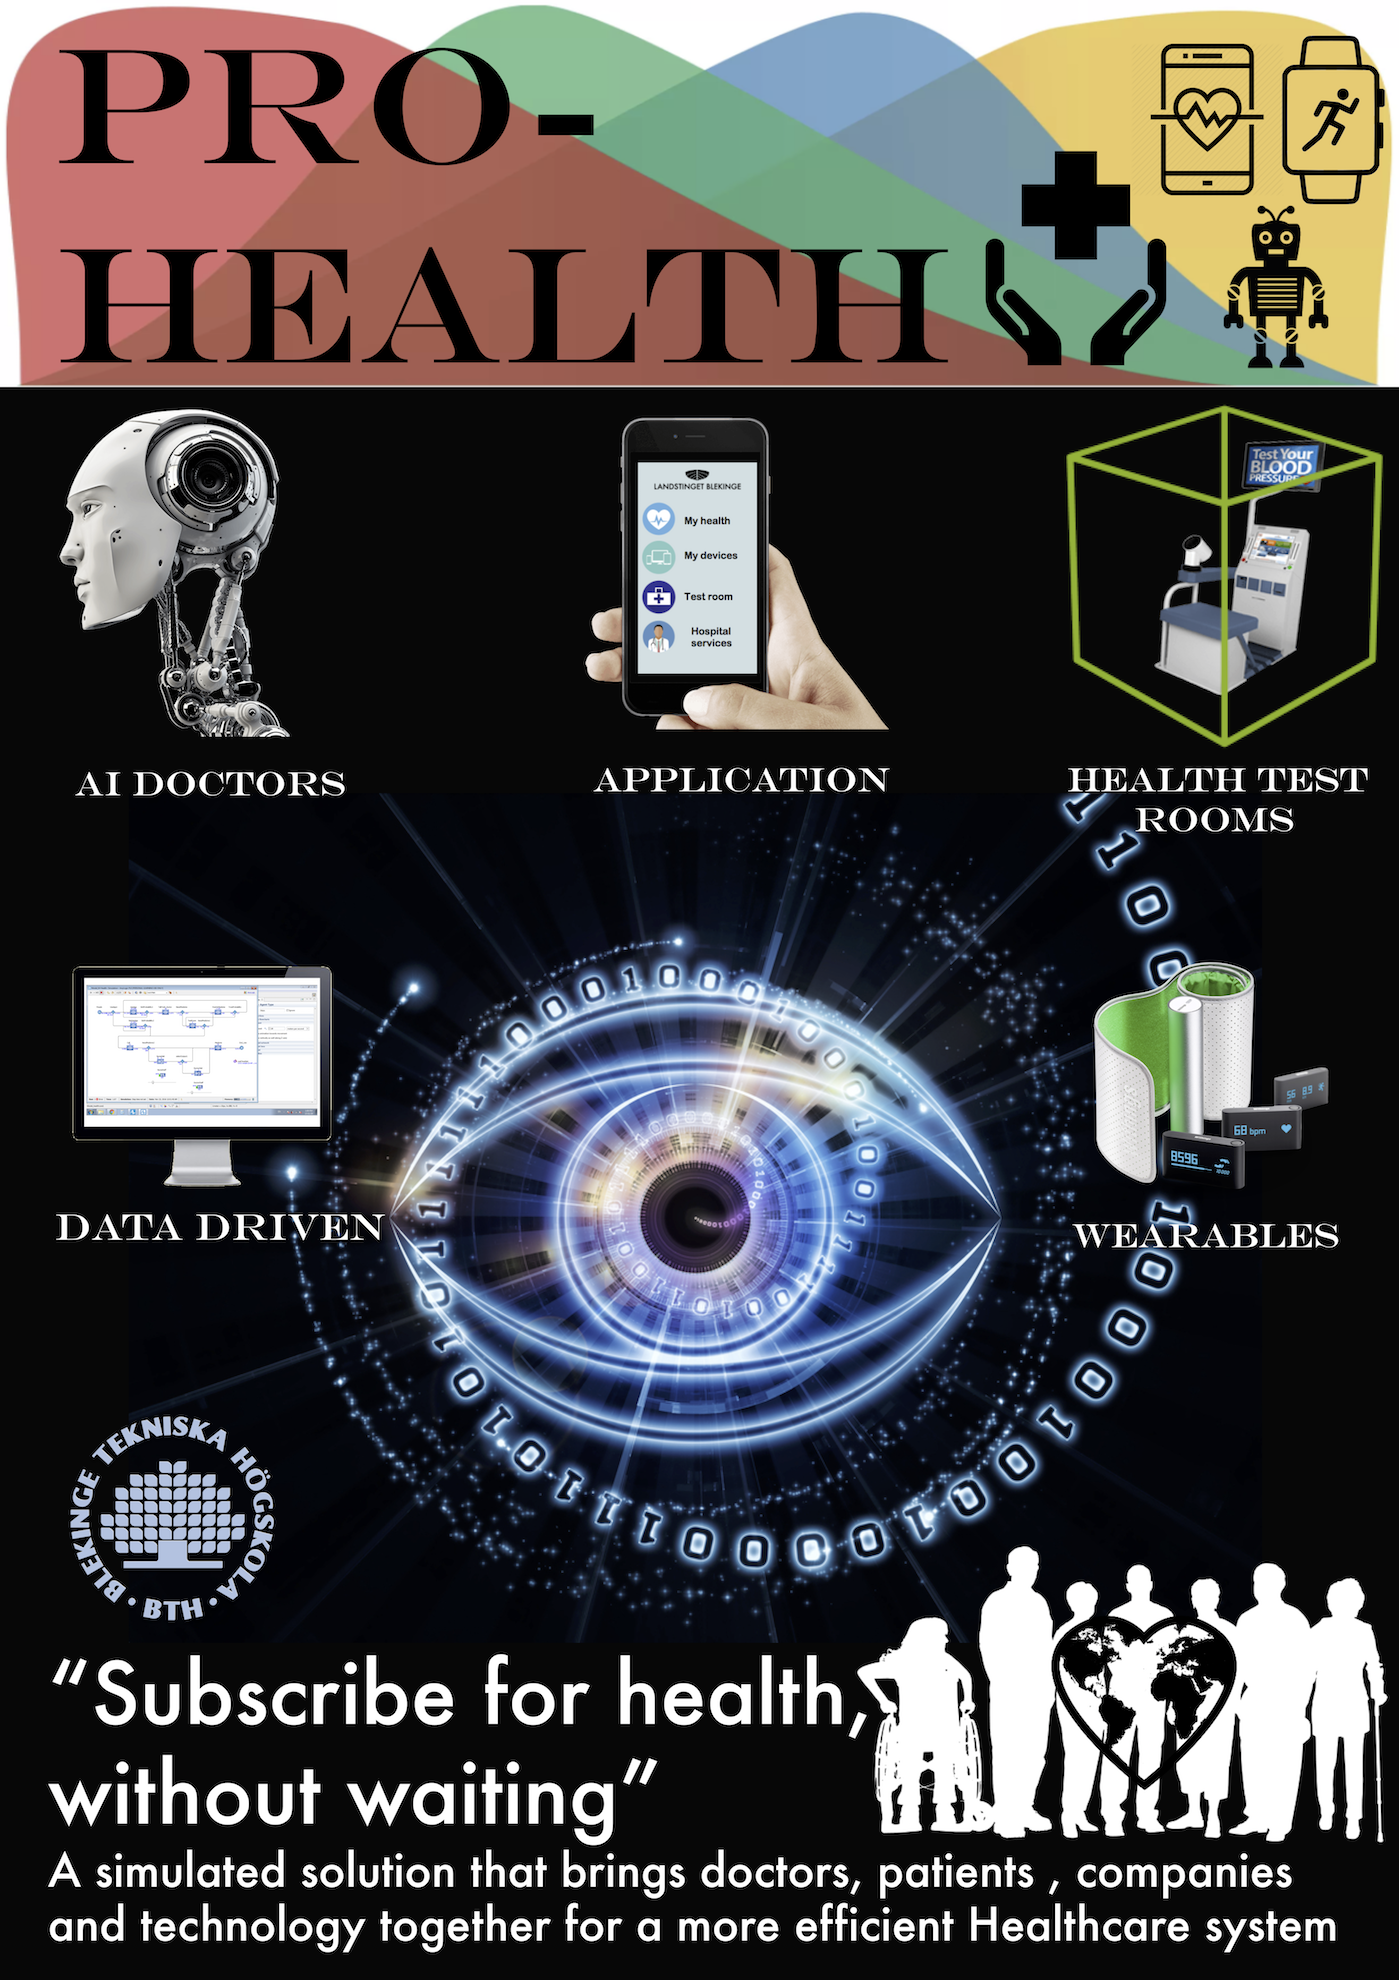 MT2544-prohealth-poster